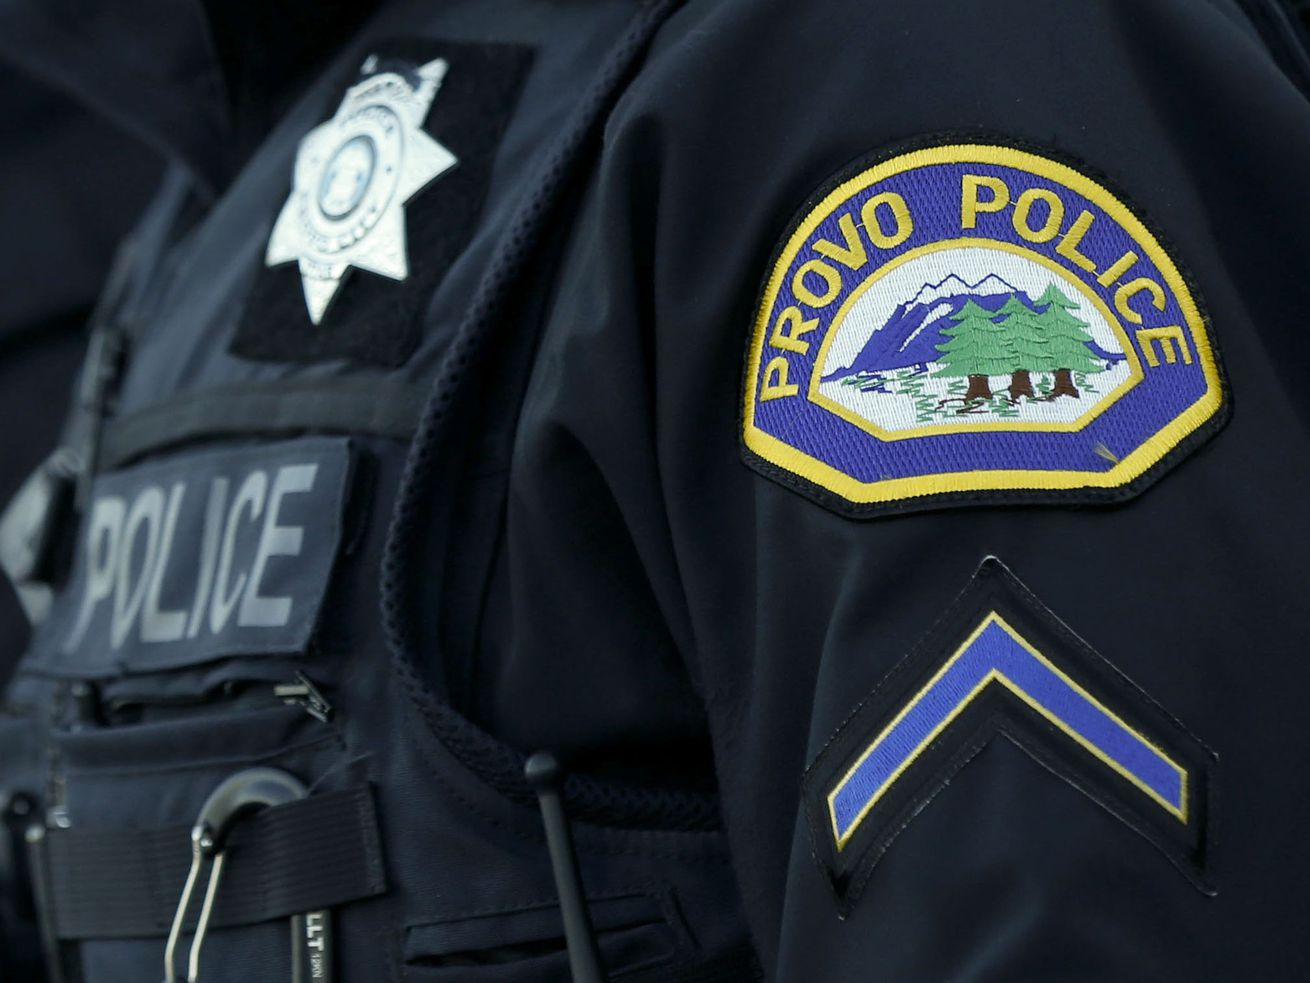 A Provo police officer is pictured on Thursday, Oct. 29, 2020.